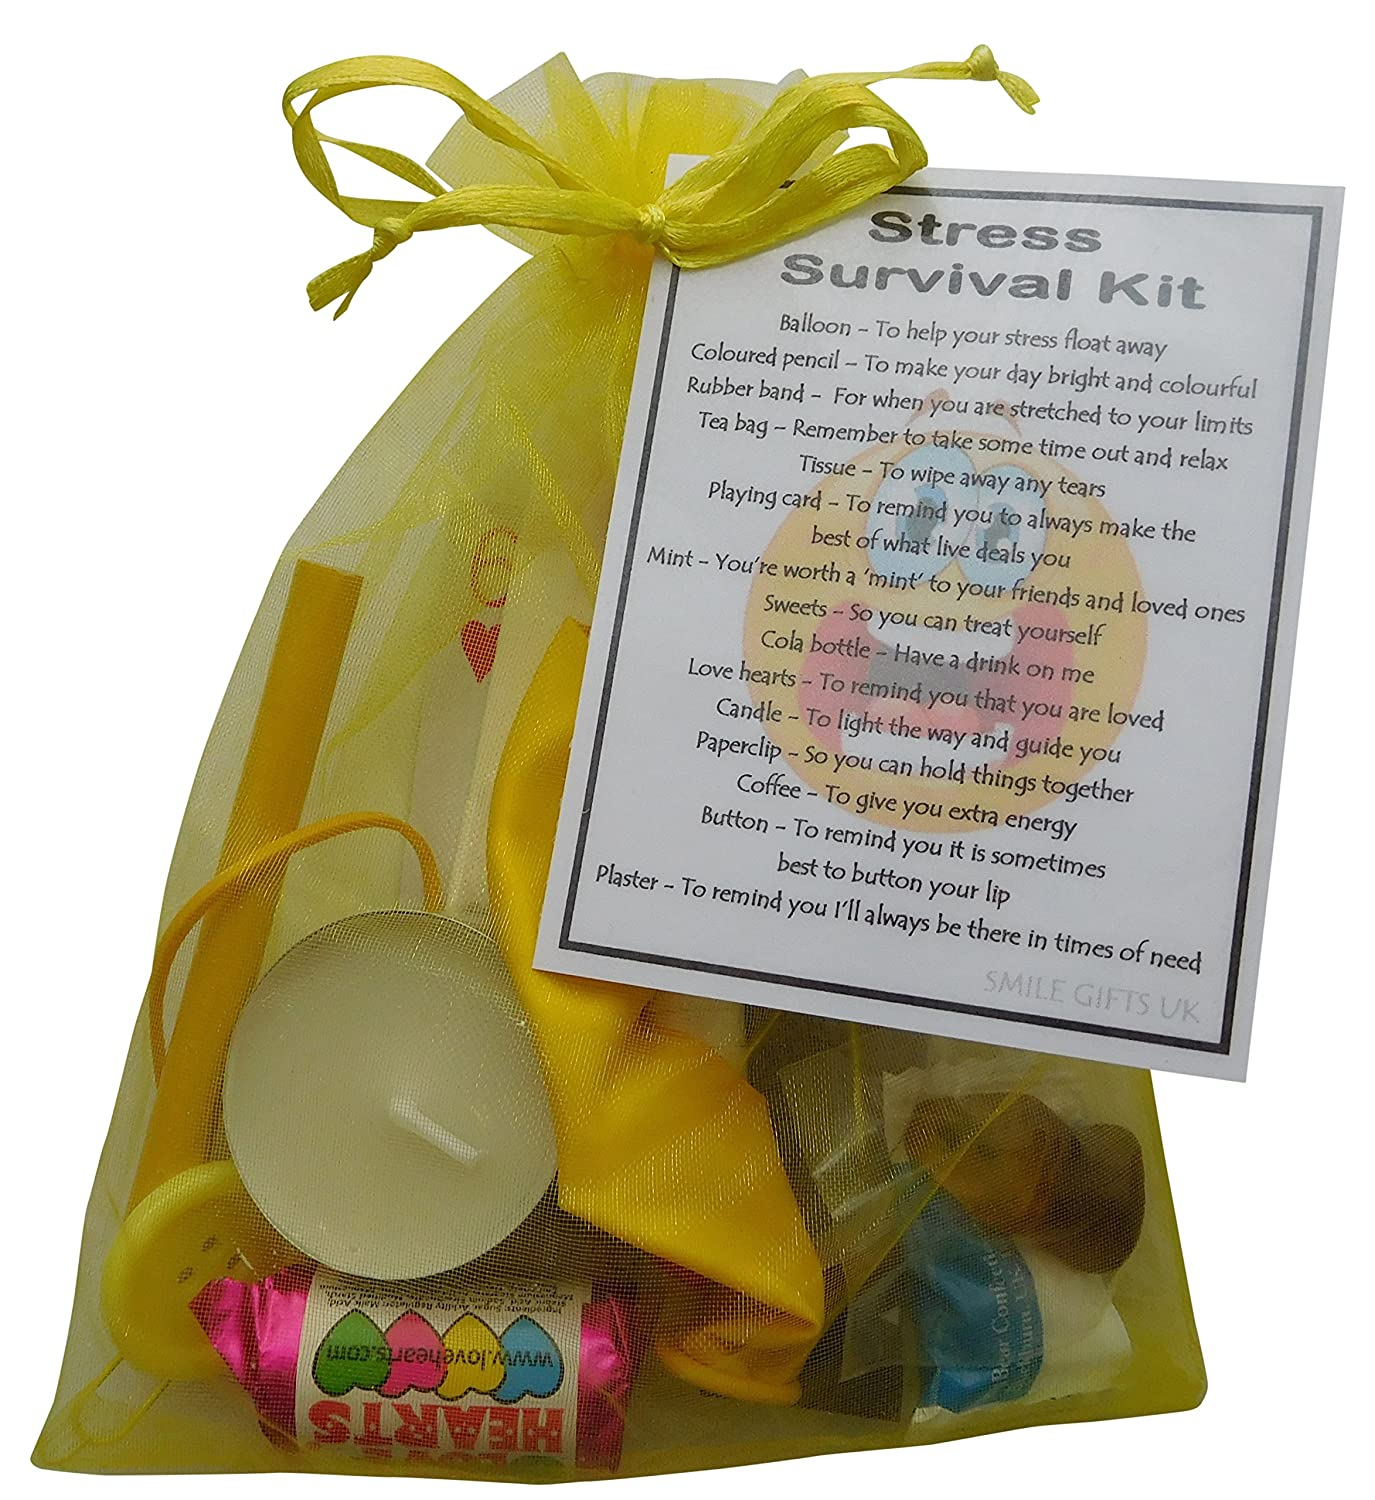 SMILE GIFTS UK Stress Survival Kit Gift Great Mini Novelty Relief To Cheer Up A Stressed Friend Or Loved One Secret Santa Work